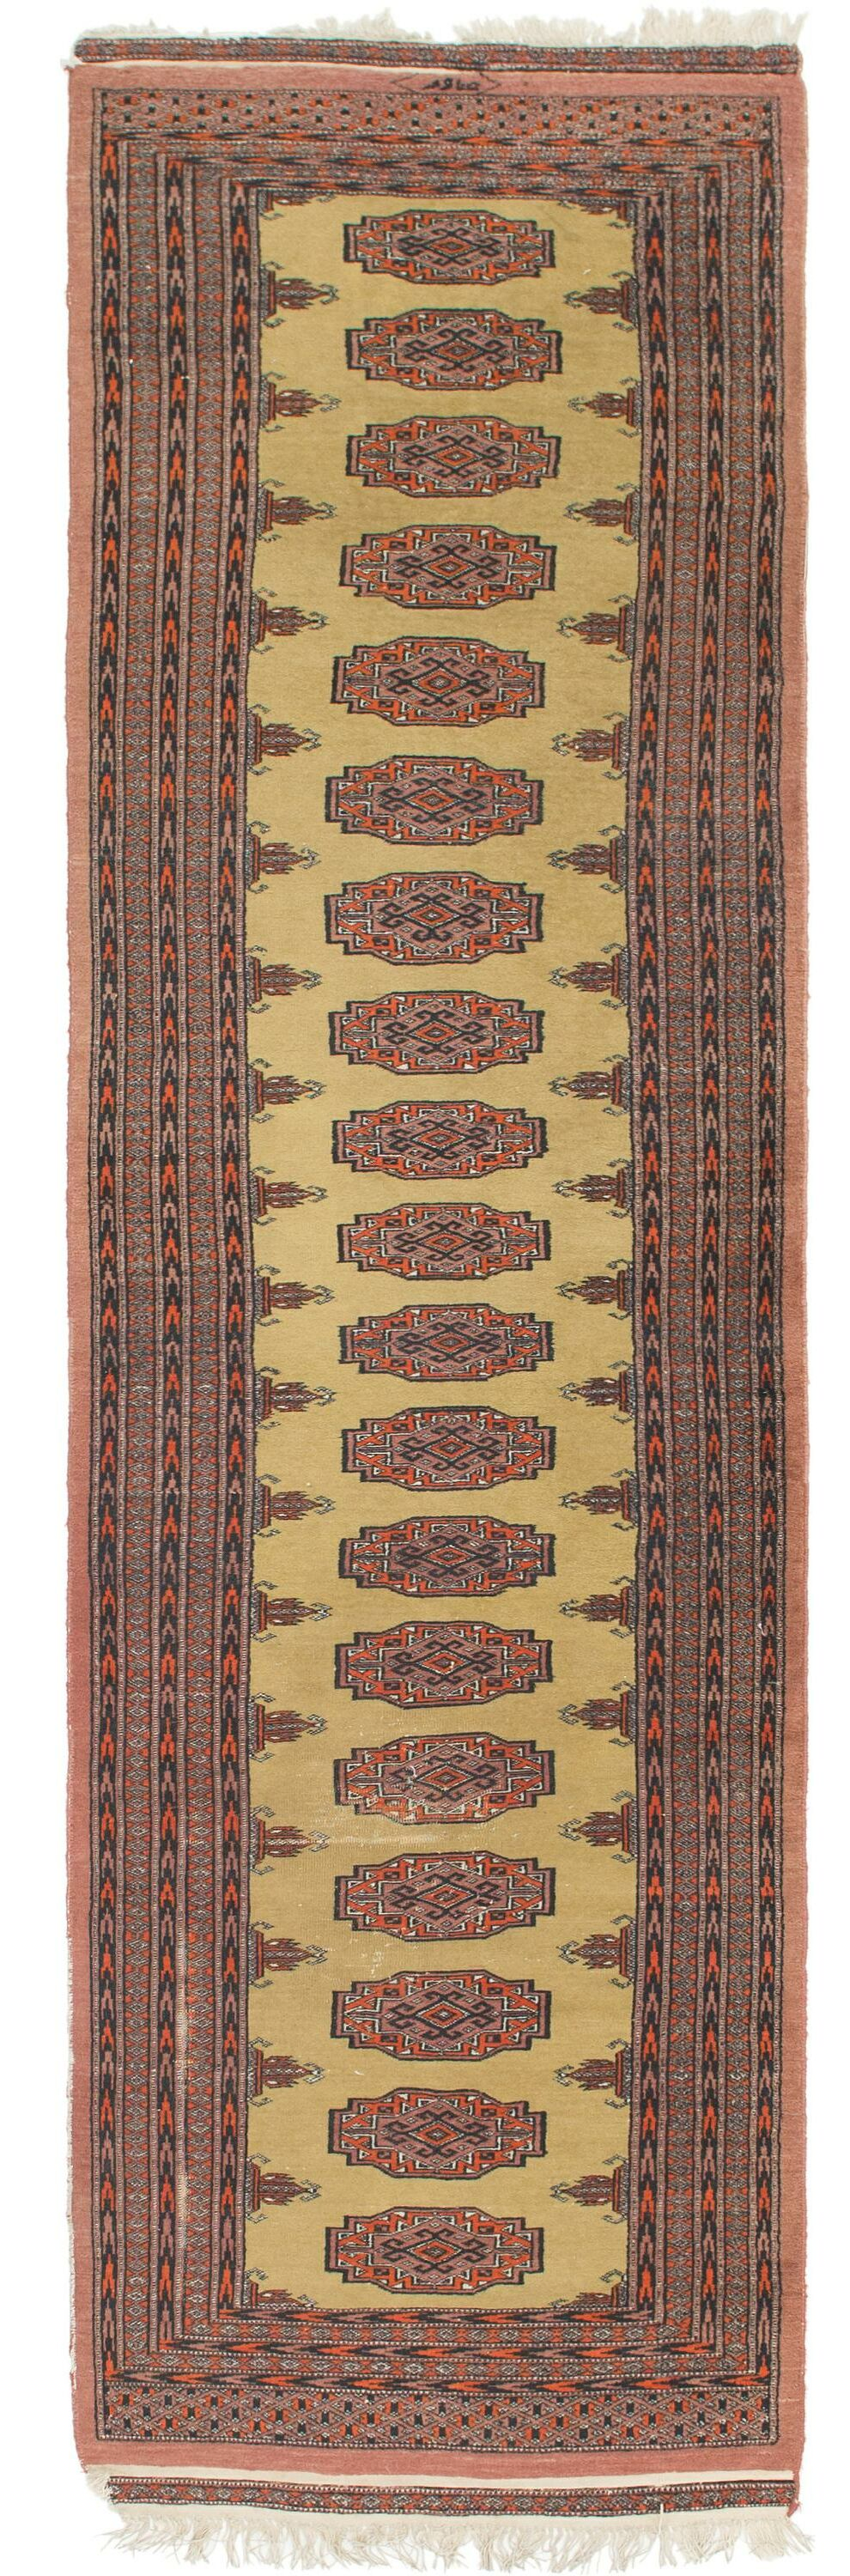 One-of-a-Kind Tekke Runner Hand-Knotted Wool Beige/Red Area Rug